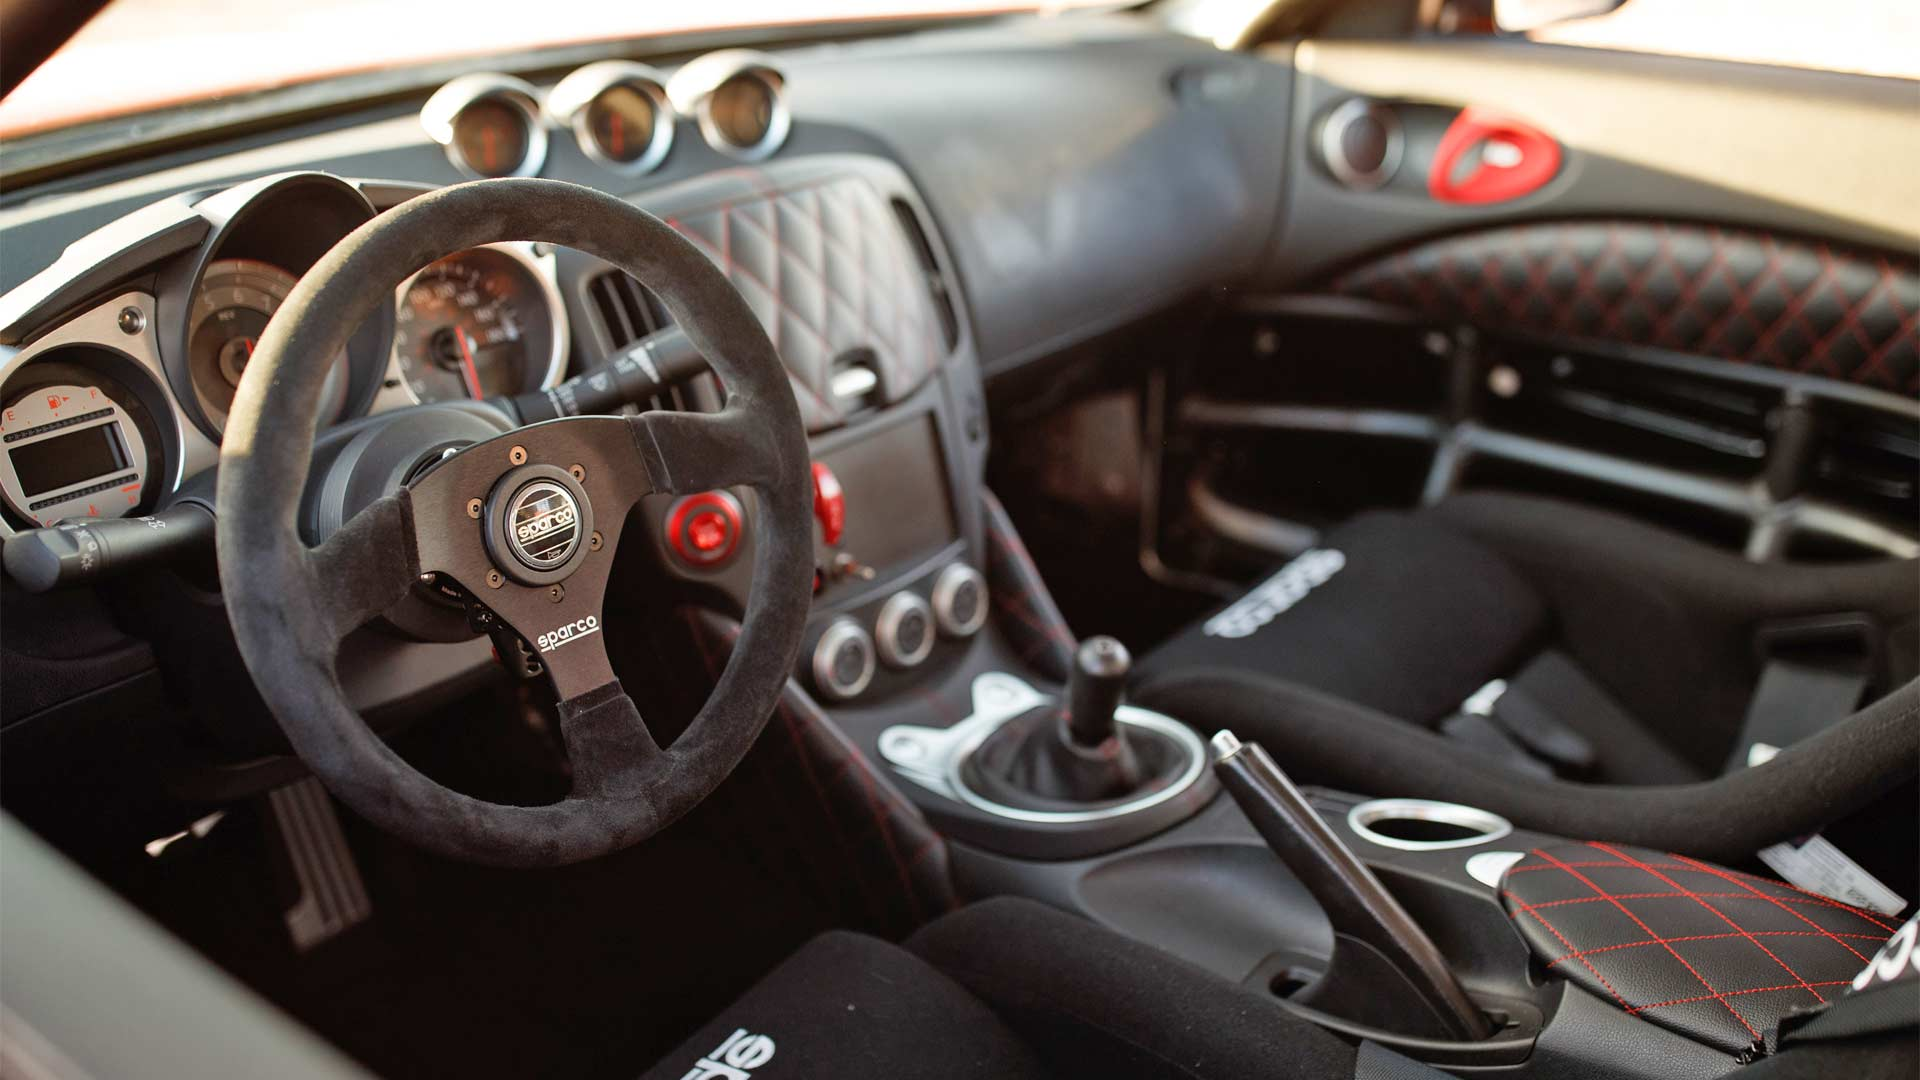 Nissan-370Z-Project-Clubsport-23-Interior